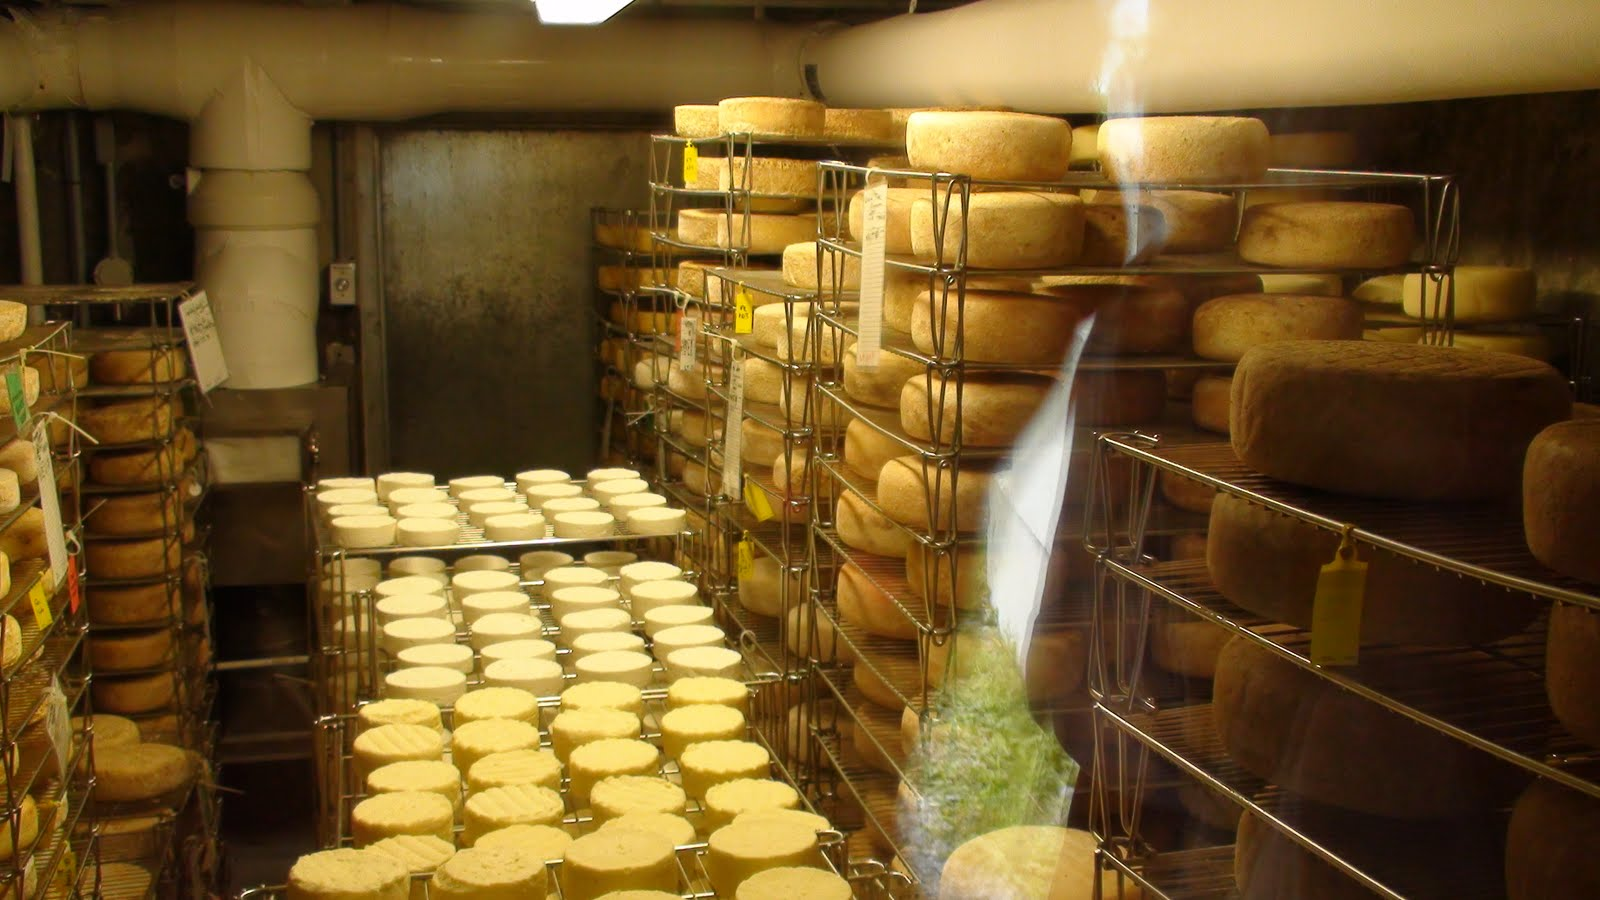 Cheese storage